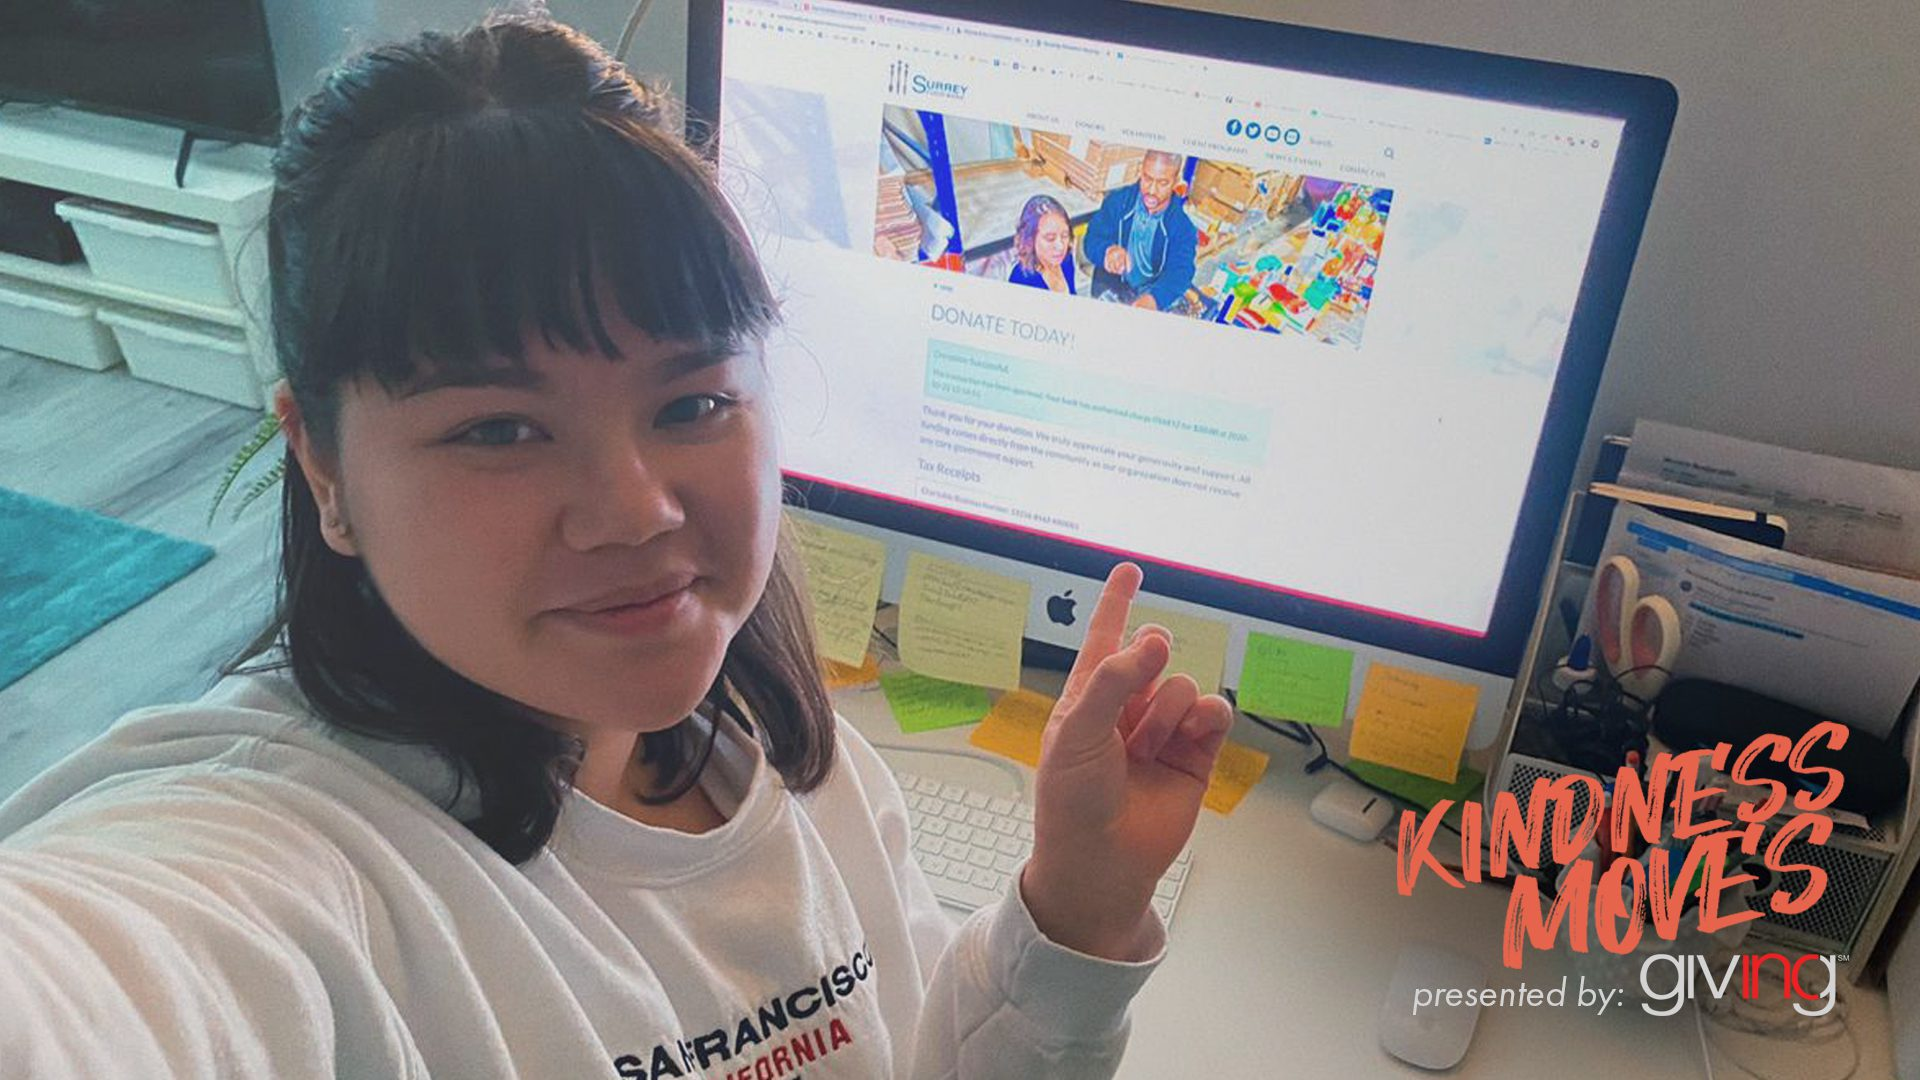 Young woman smiling, sitting in front of computer pointing back to her screen.